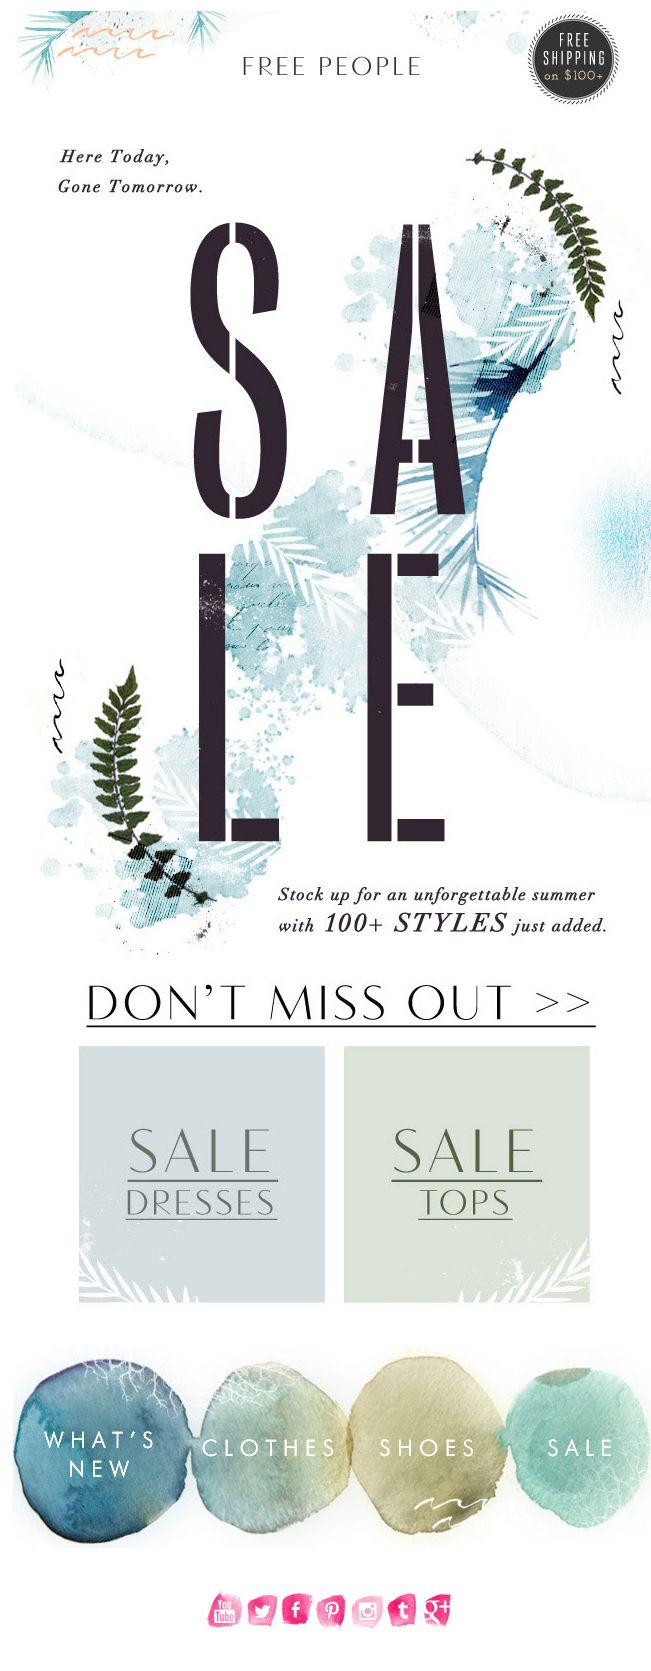 Free People : SALE + Typography